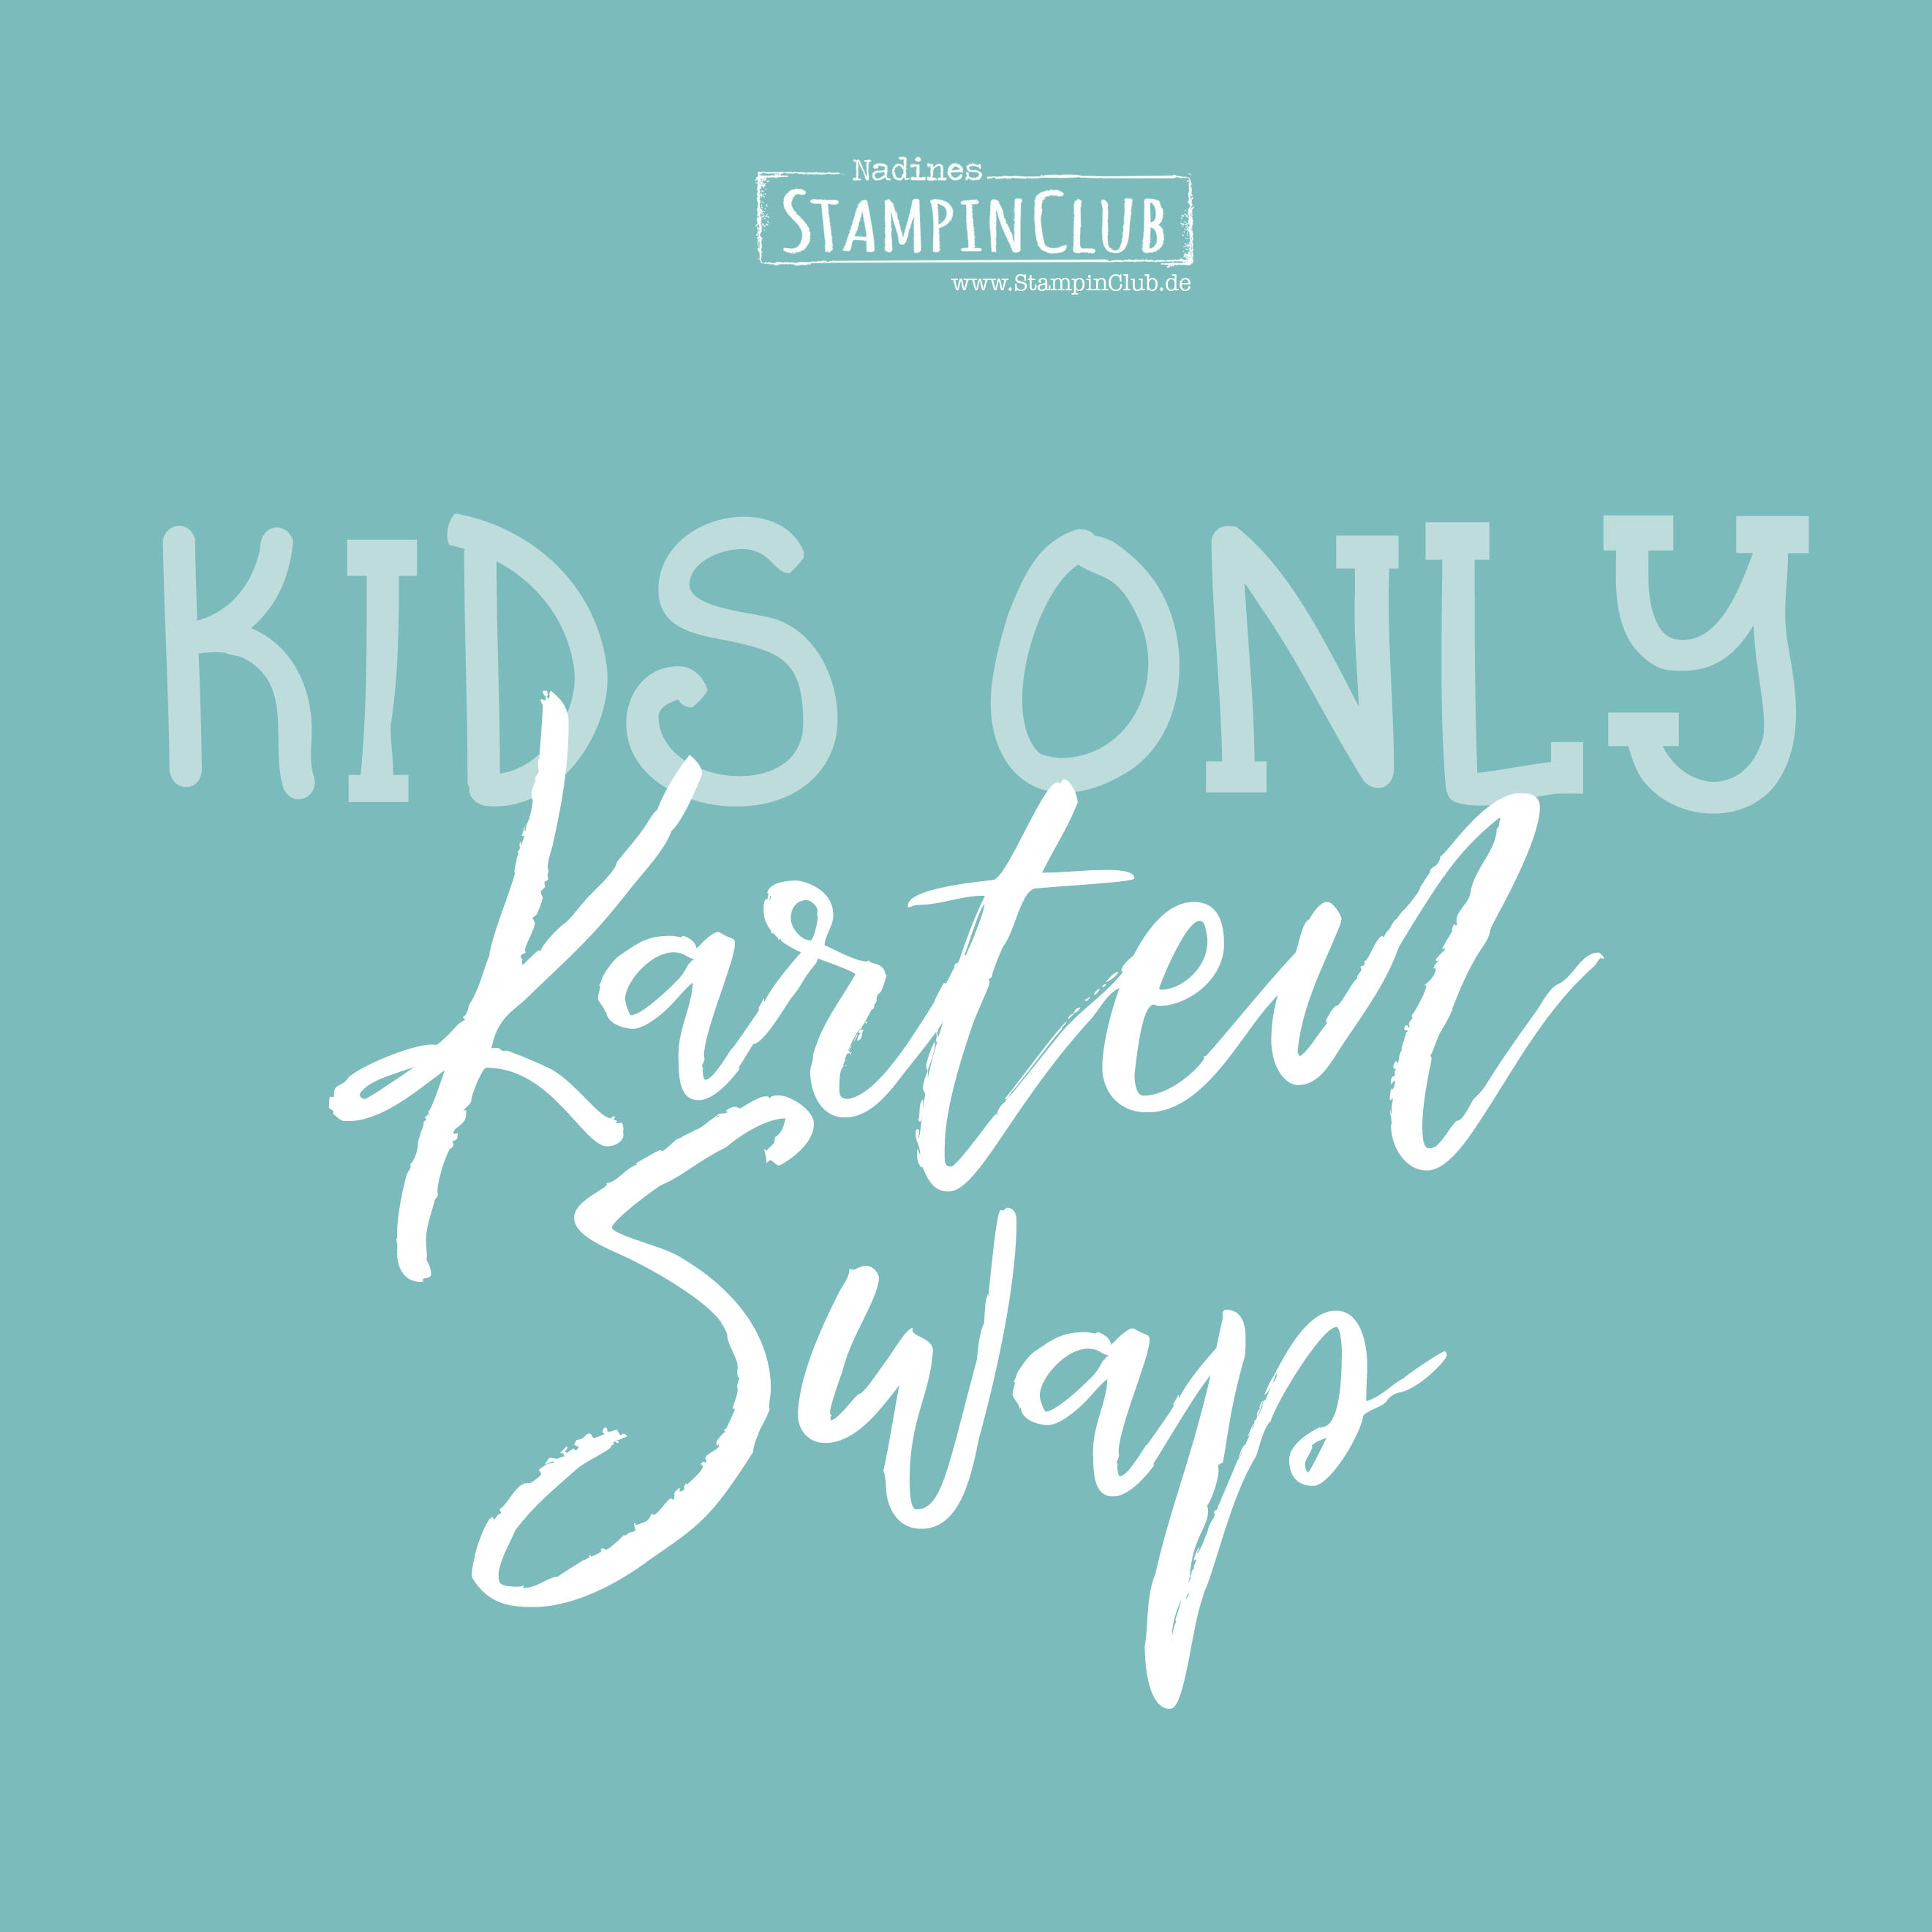 Kids only Kartenswap